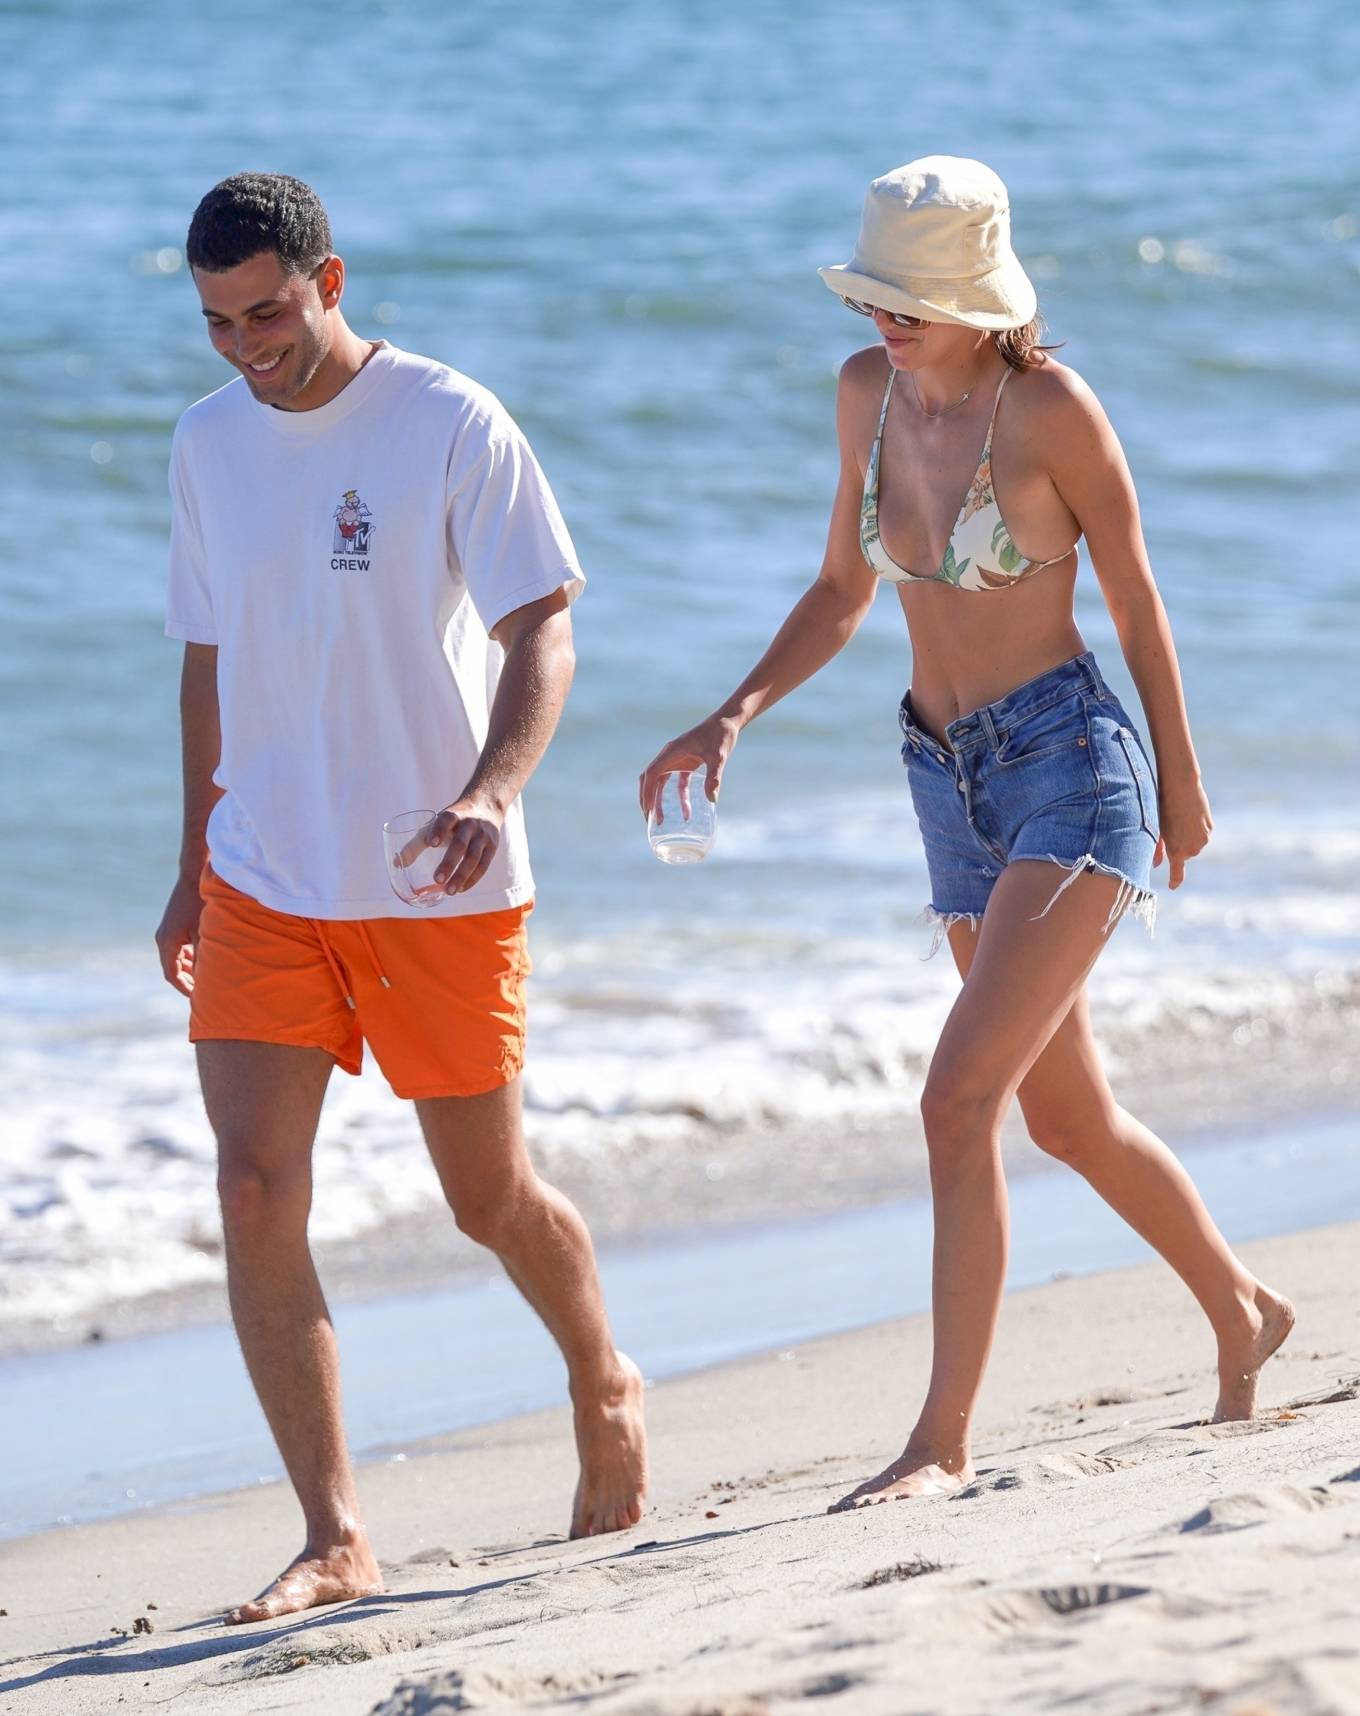 Kendall Jenner Photographed with NBA Star Devin Booker